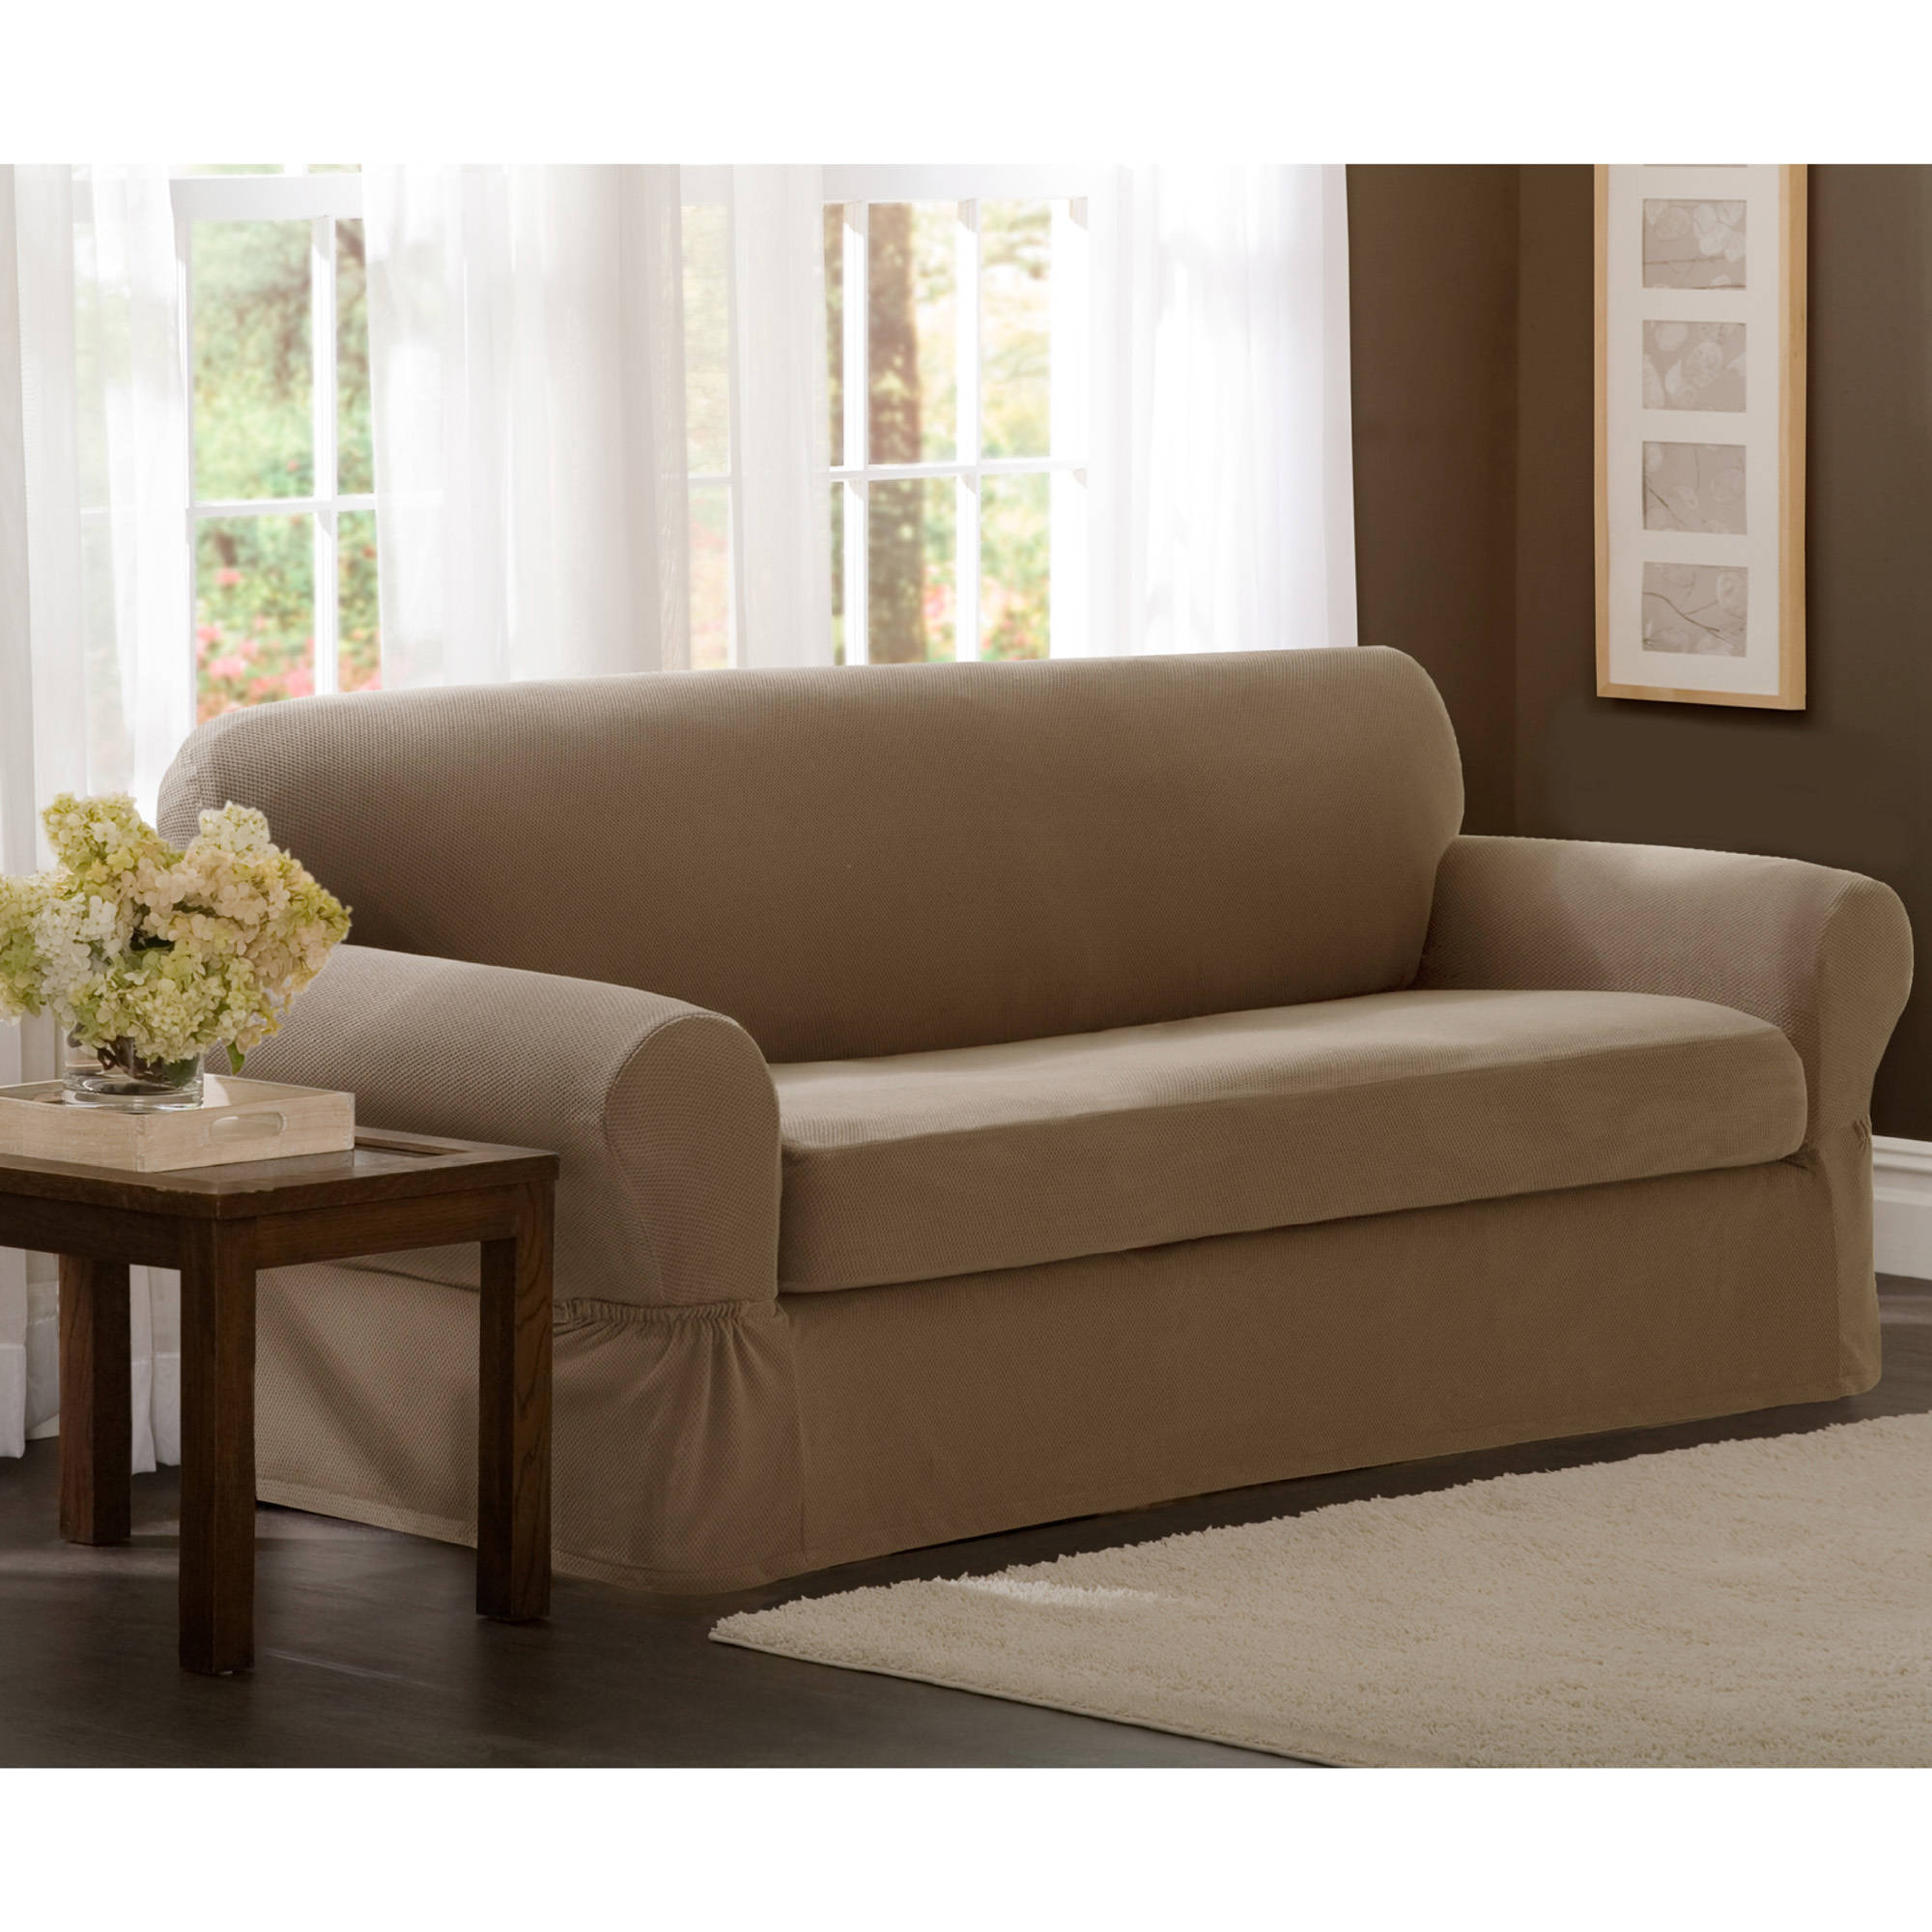 Oversized sofa slipcover couch slipcovers thesofa Loveseat slip cover